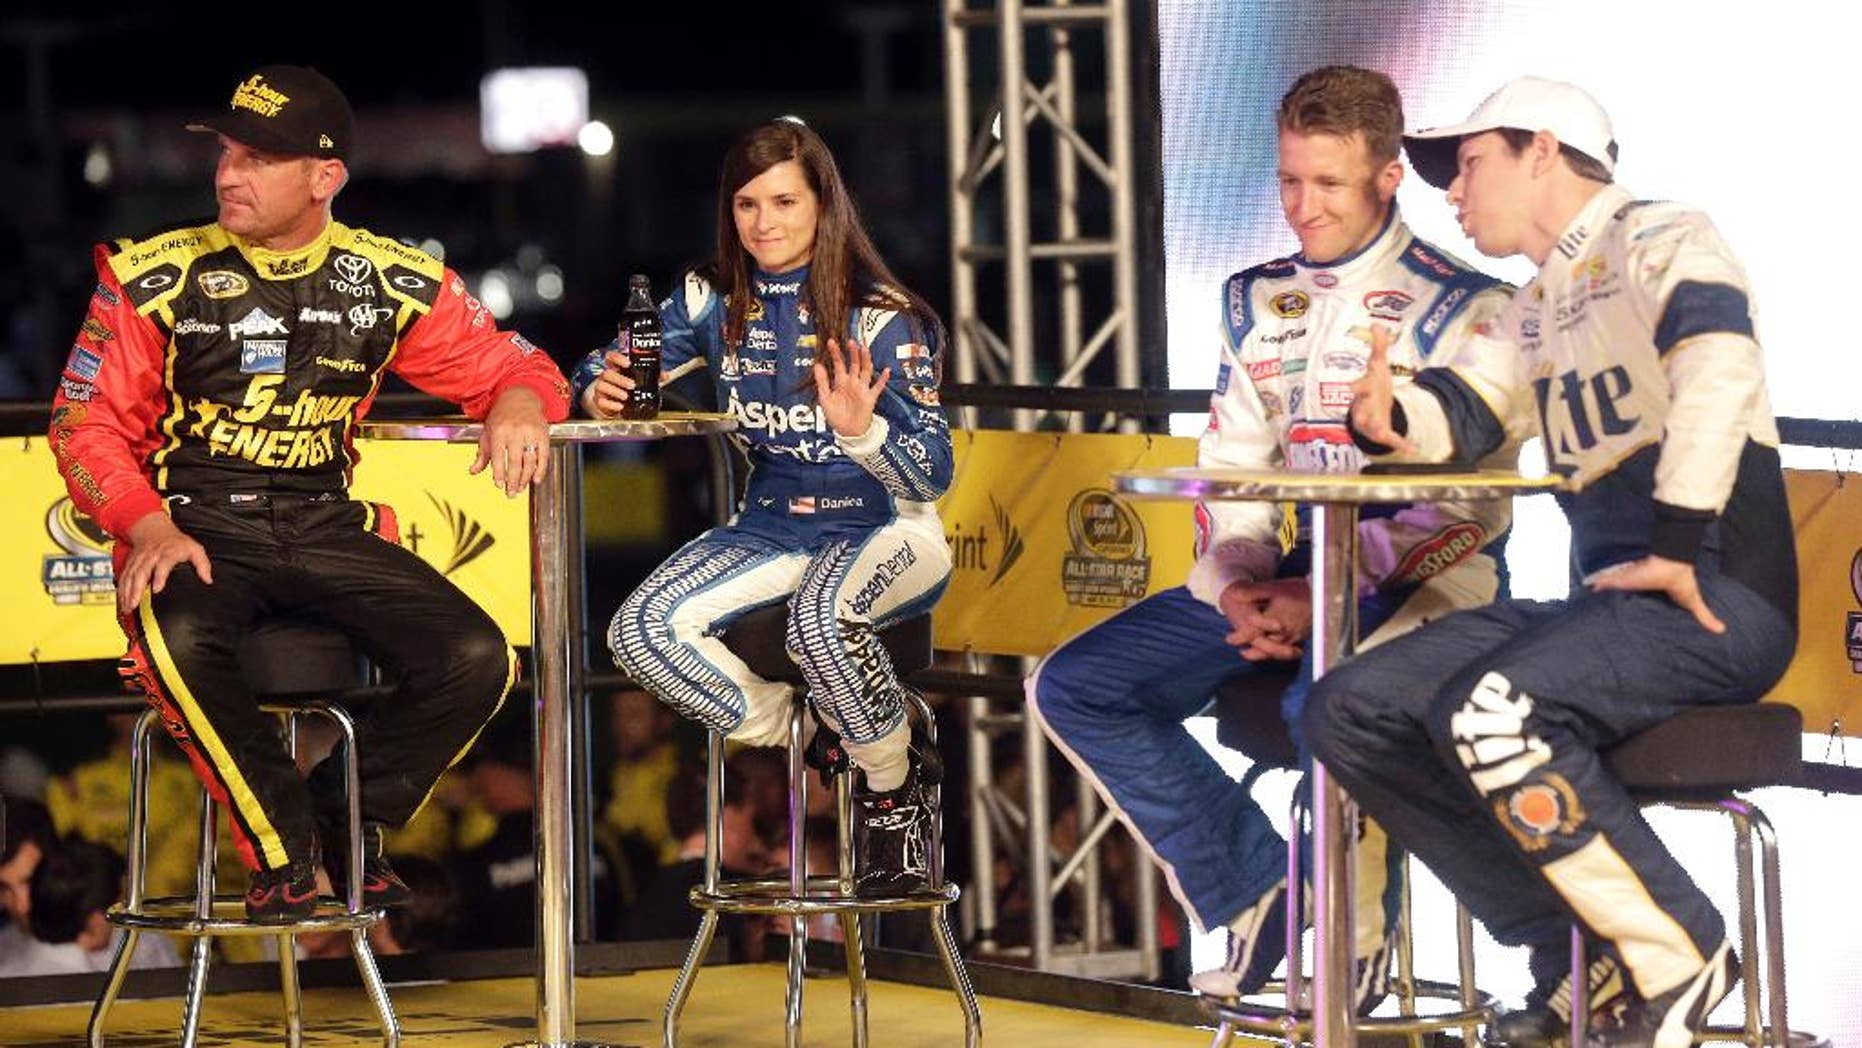 Clint Bowyer, Danica Patrick, AJ Allmendinger and Brad Keselowski, from right, watch during driver introductions prior to the NASCAR Sprint All-Star auto race at Charlotte Motor Speedway in Concord, N.C., Saturday, May 16, 2015. (AP Photo/Gerry Broome)